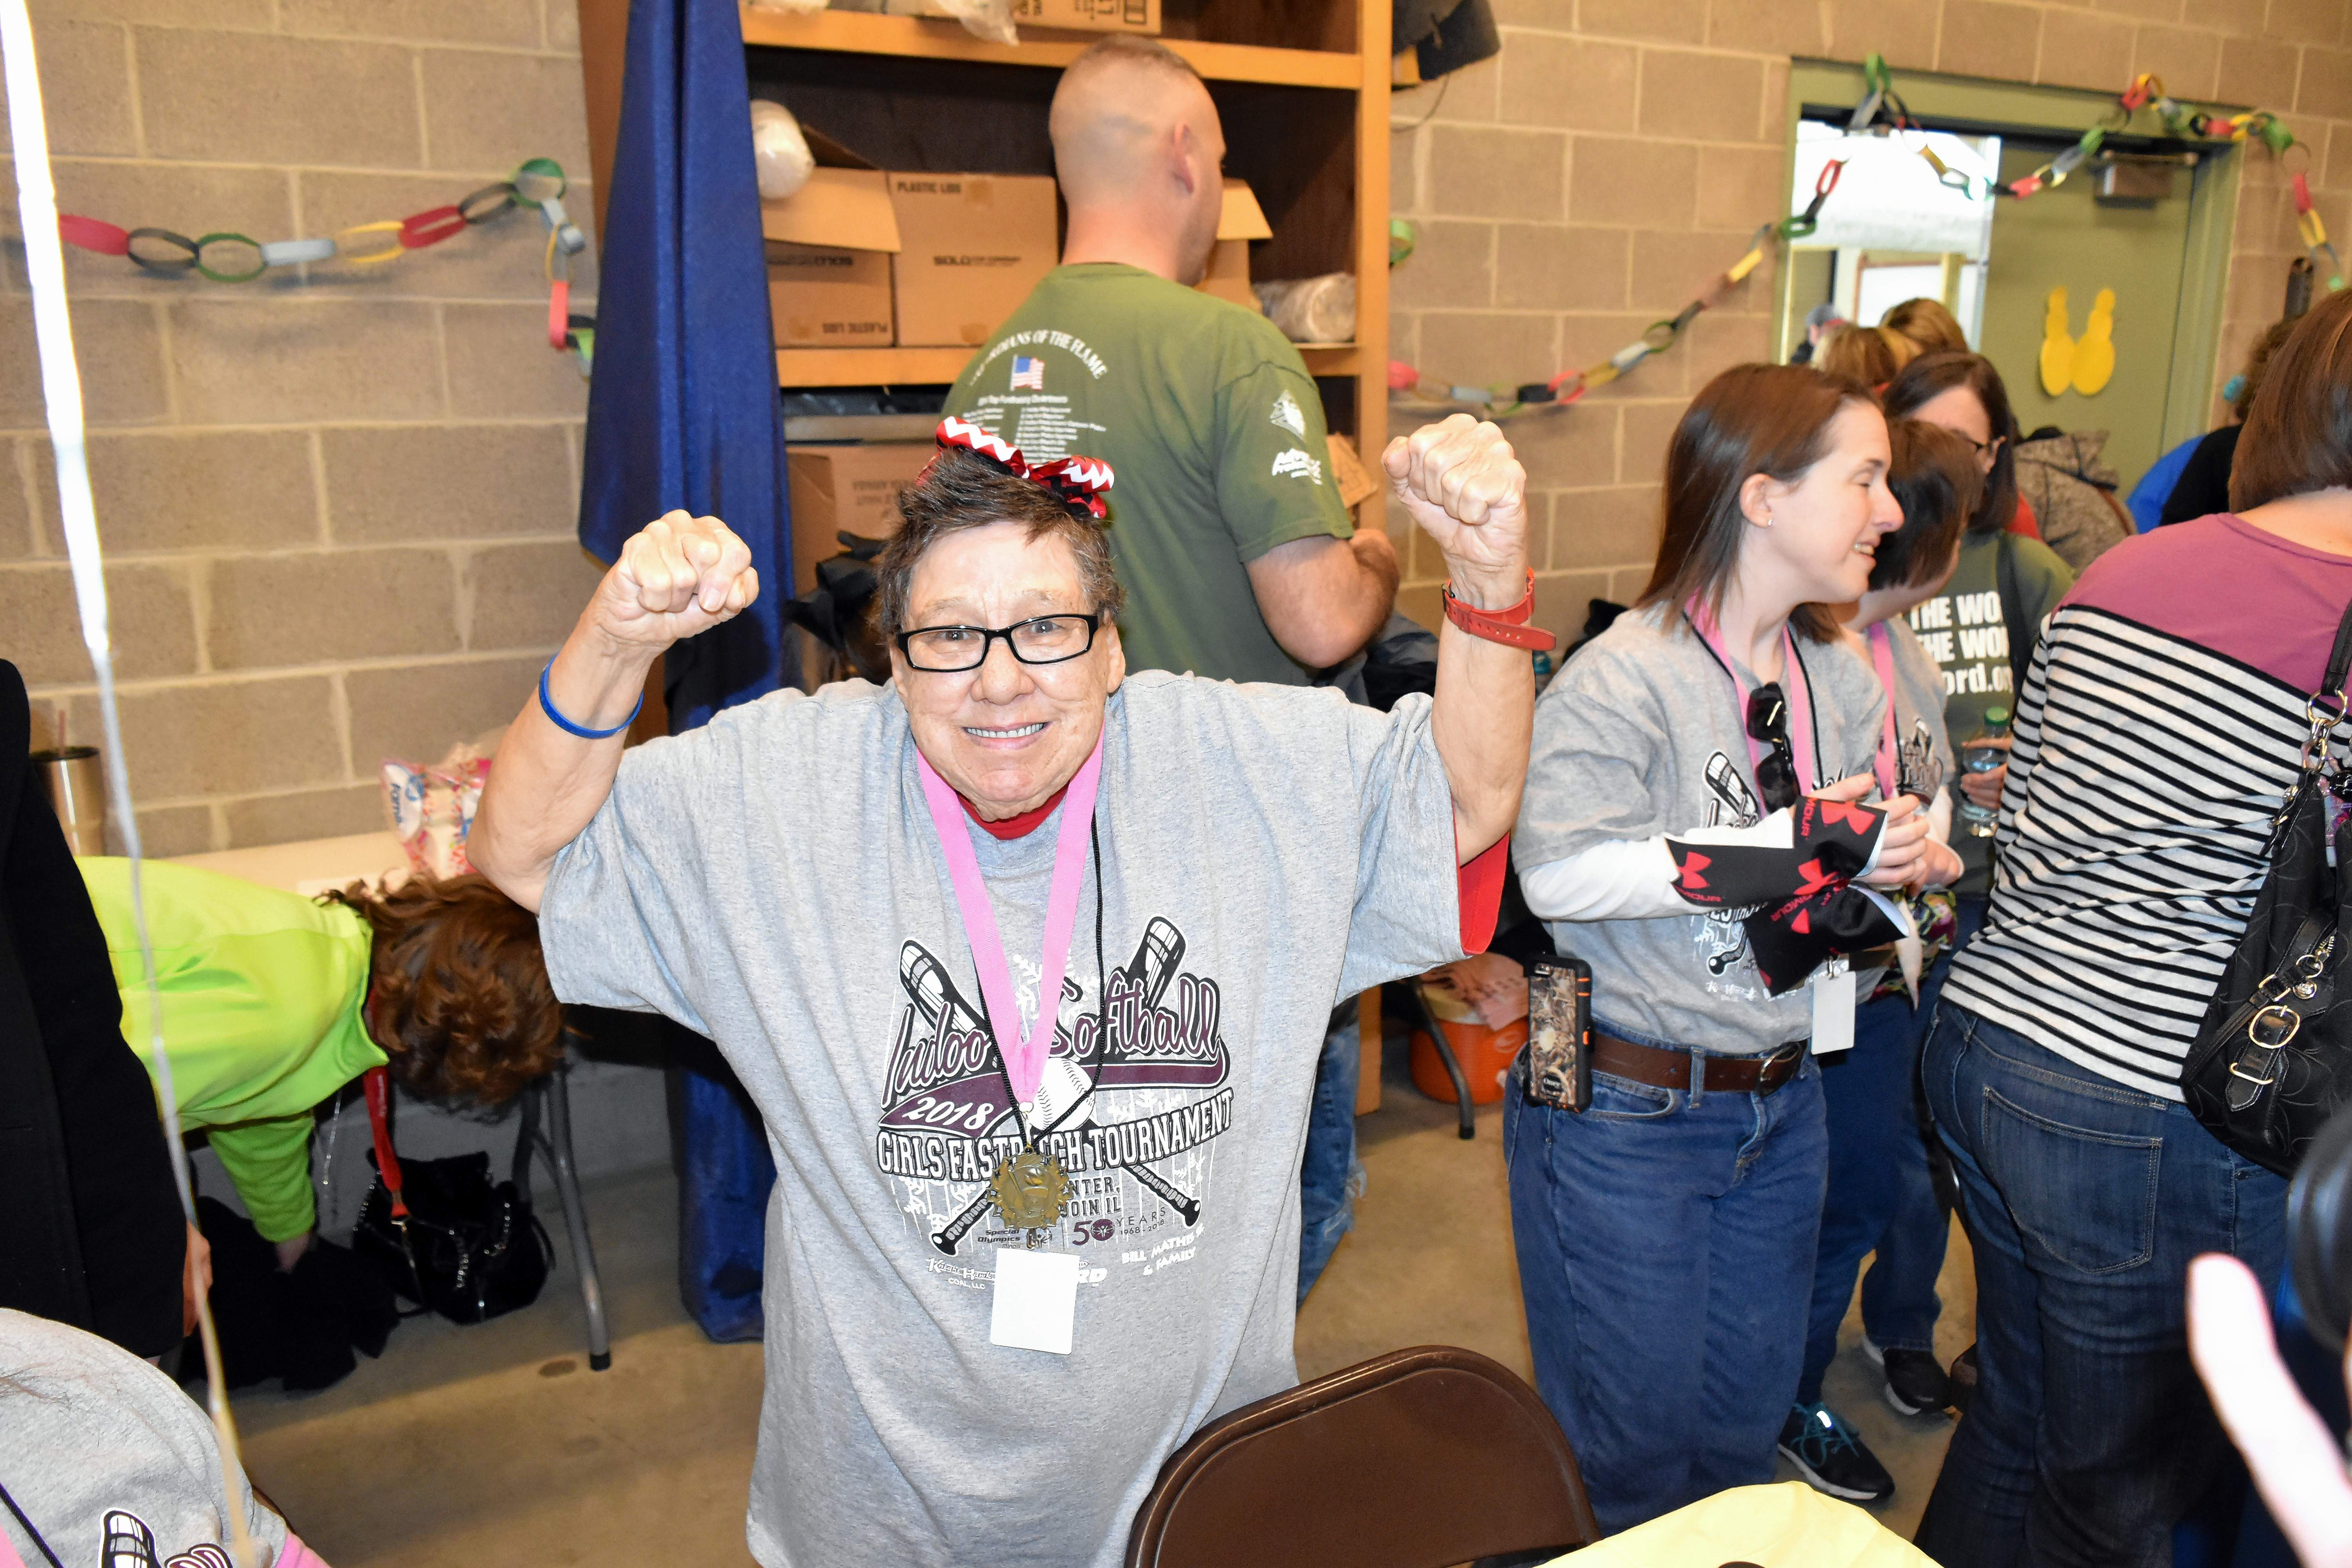 Special Olympics athlete Barbara Dillow poses for a photo during a complimentary meal prior to the opening ceremony.